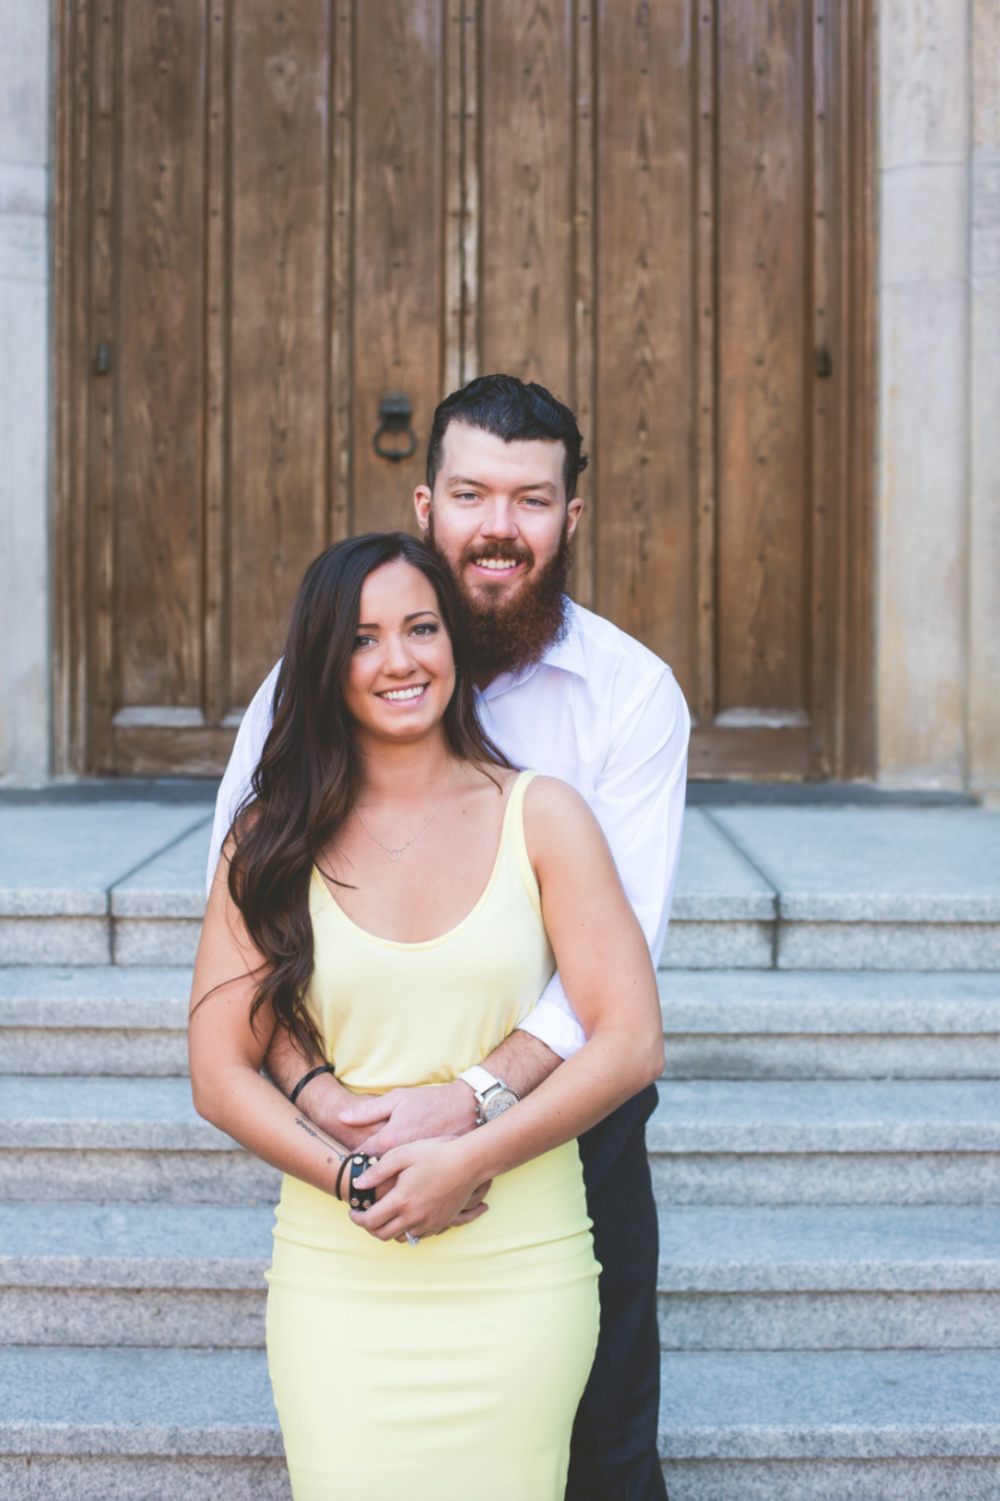 Engagement-Photos-Hamilton-Photographer-James-Street-HamOnt-GTA-Toronto-Niagara-Urban-Engaged-Moments-by-Lauren-Photo-3.png